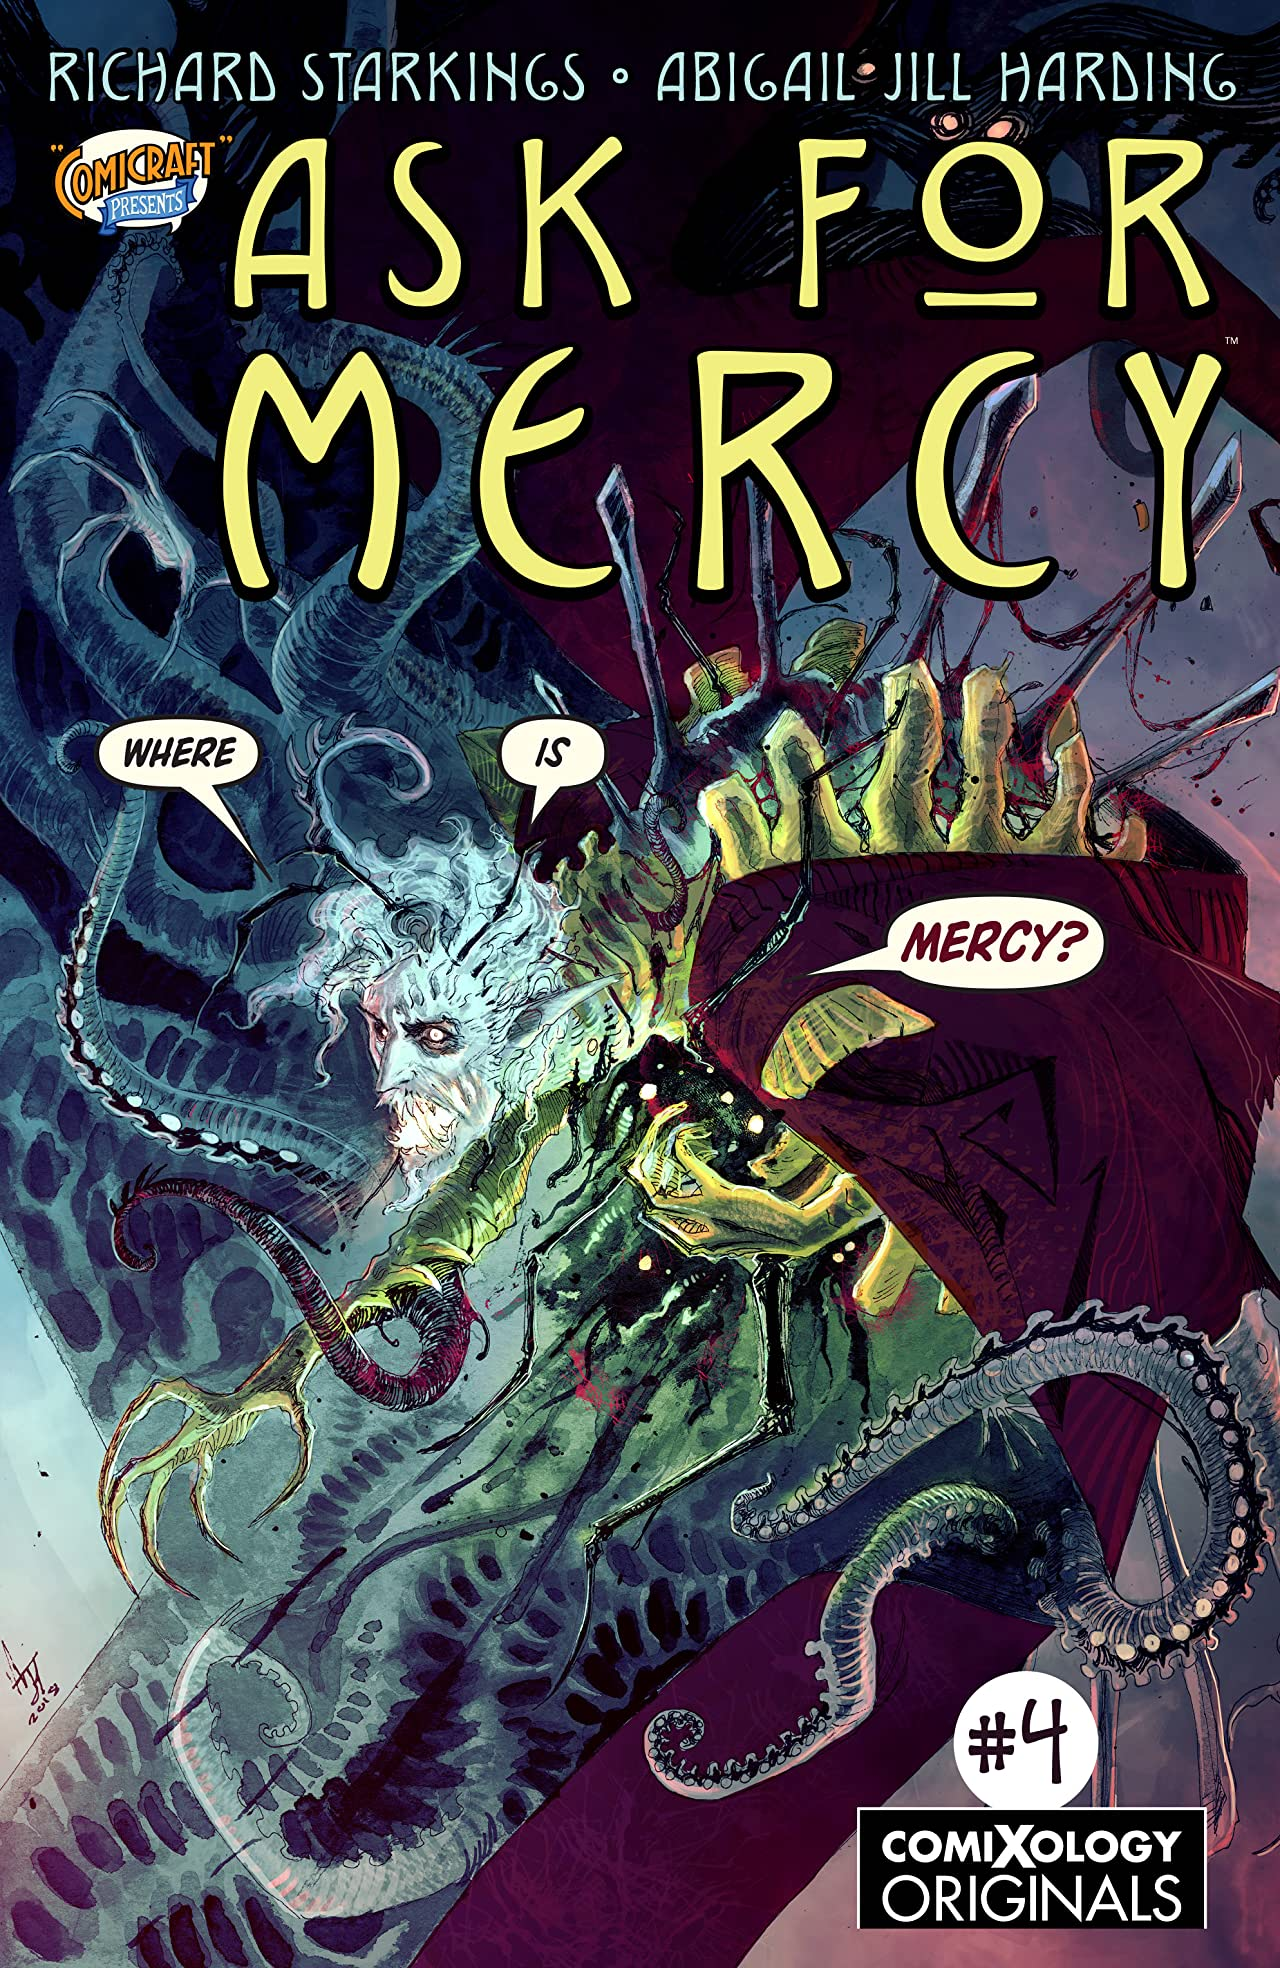 Ask For Mercy (comiXology Originals) #4 (of 6)